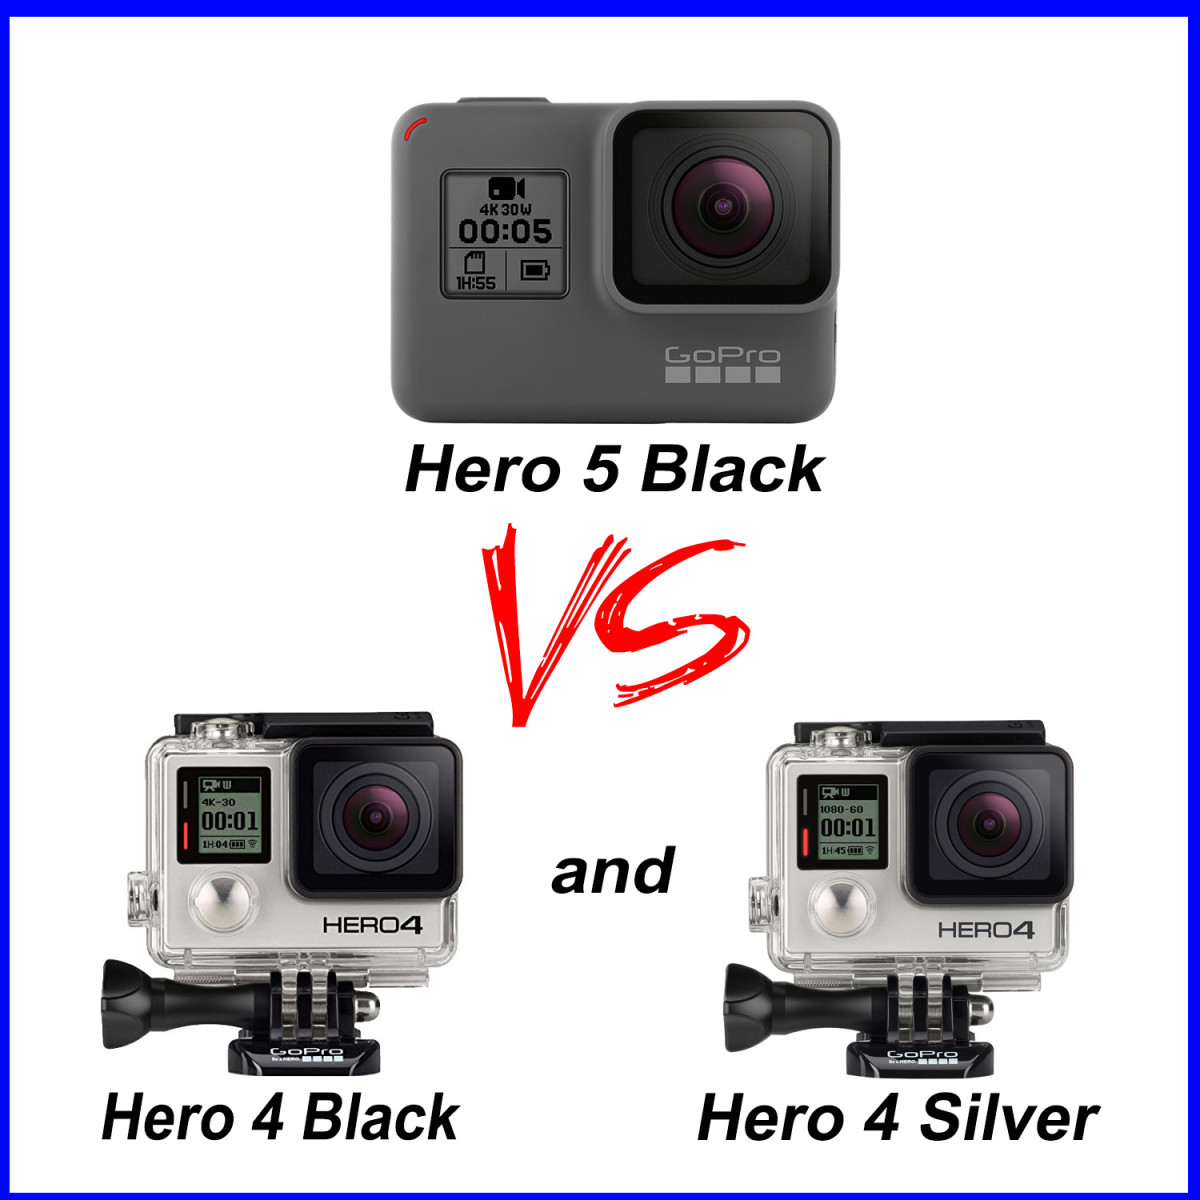 gopro hero 4 vs 5 a comprehensive review hubpages. Black Bedroom Furniture Sets. Home Design Ideas